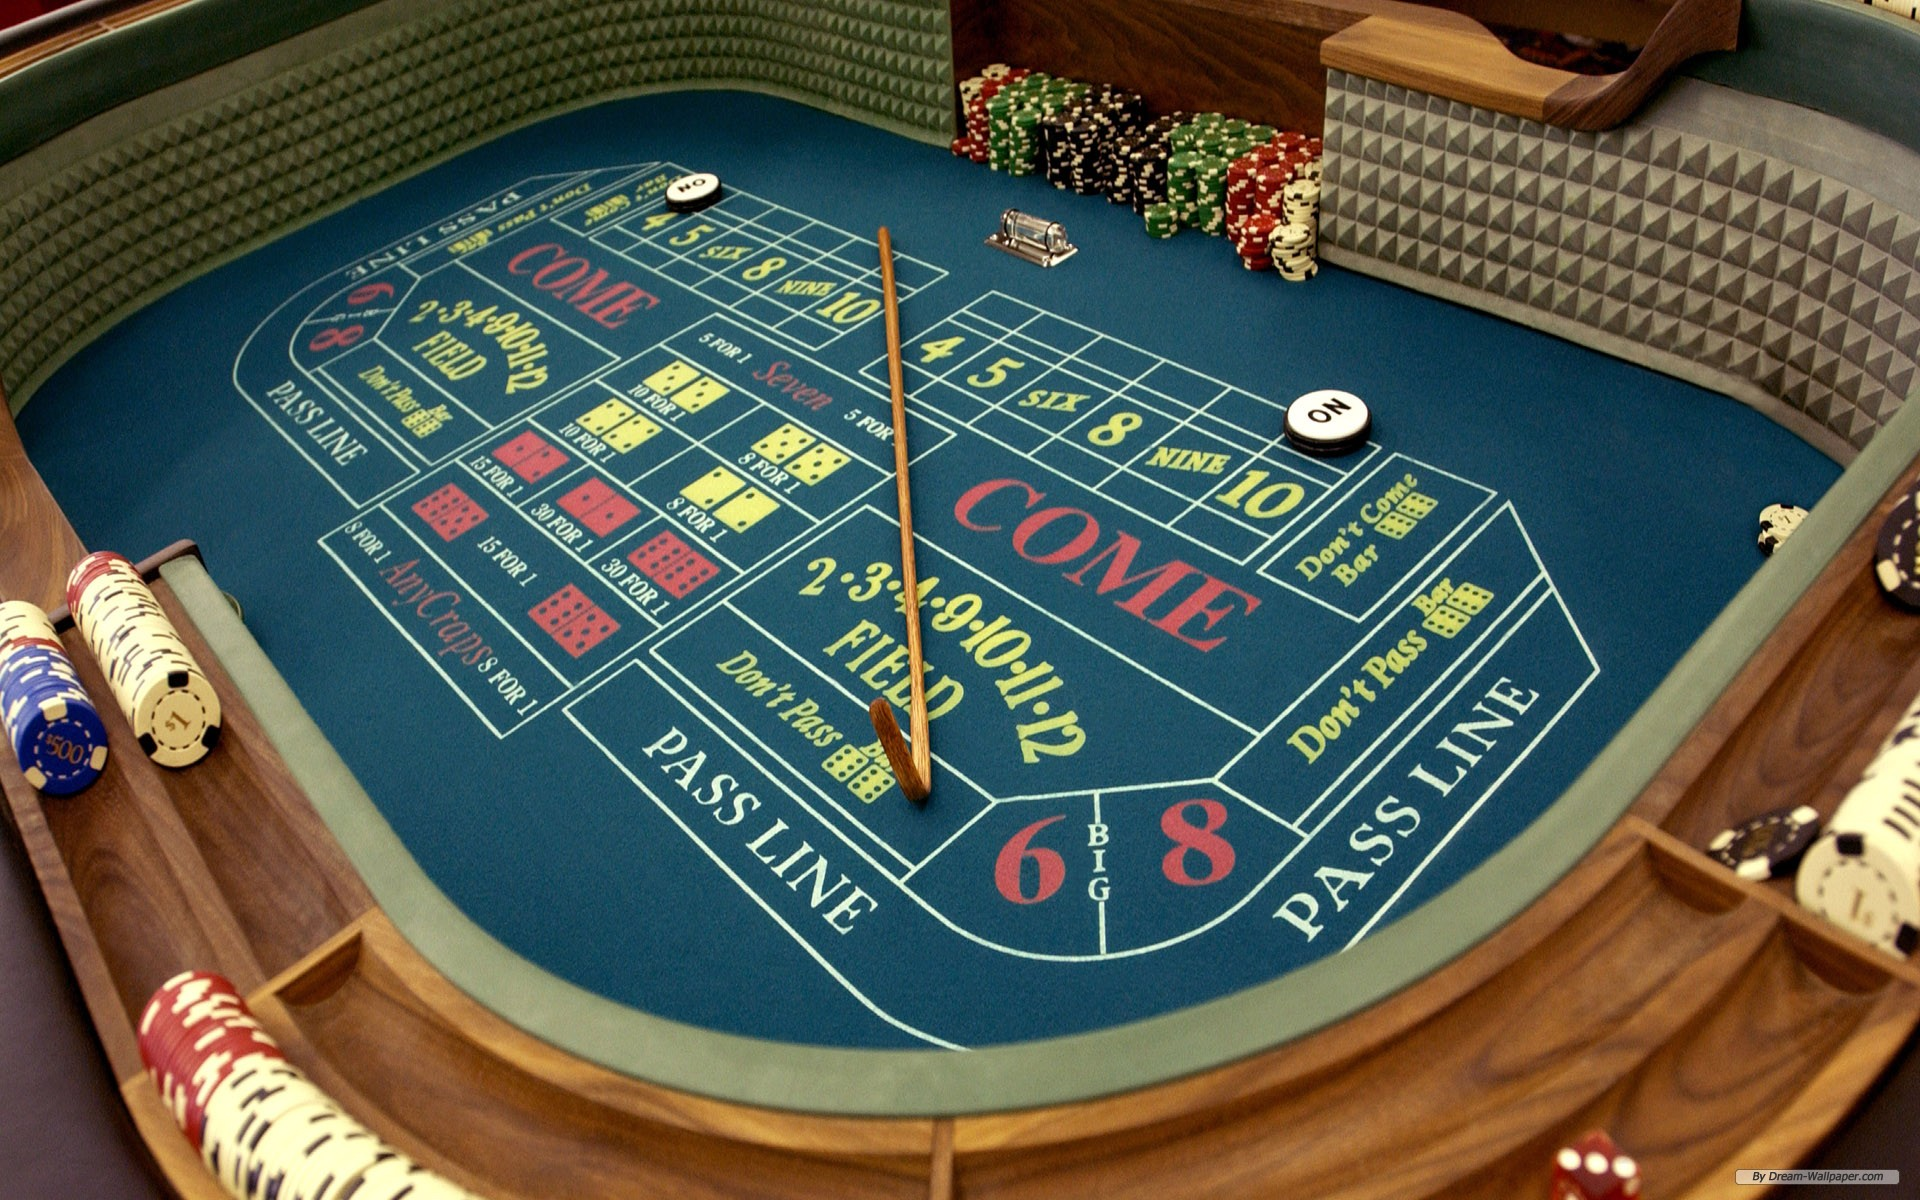 The largest Lie In Casino